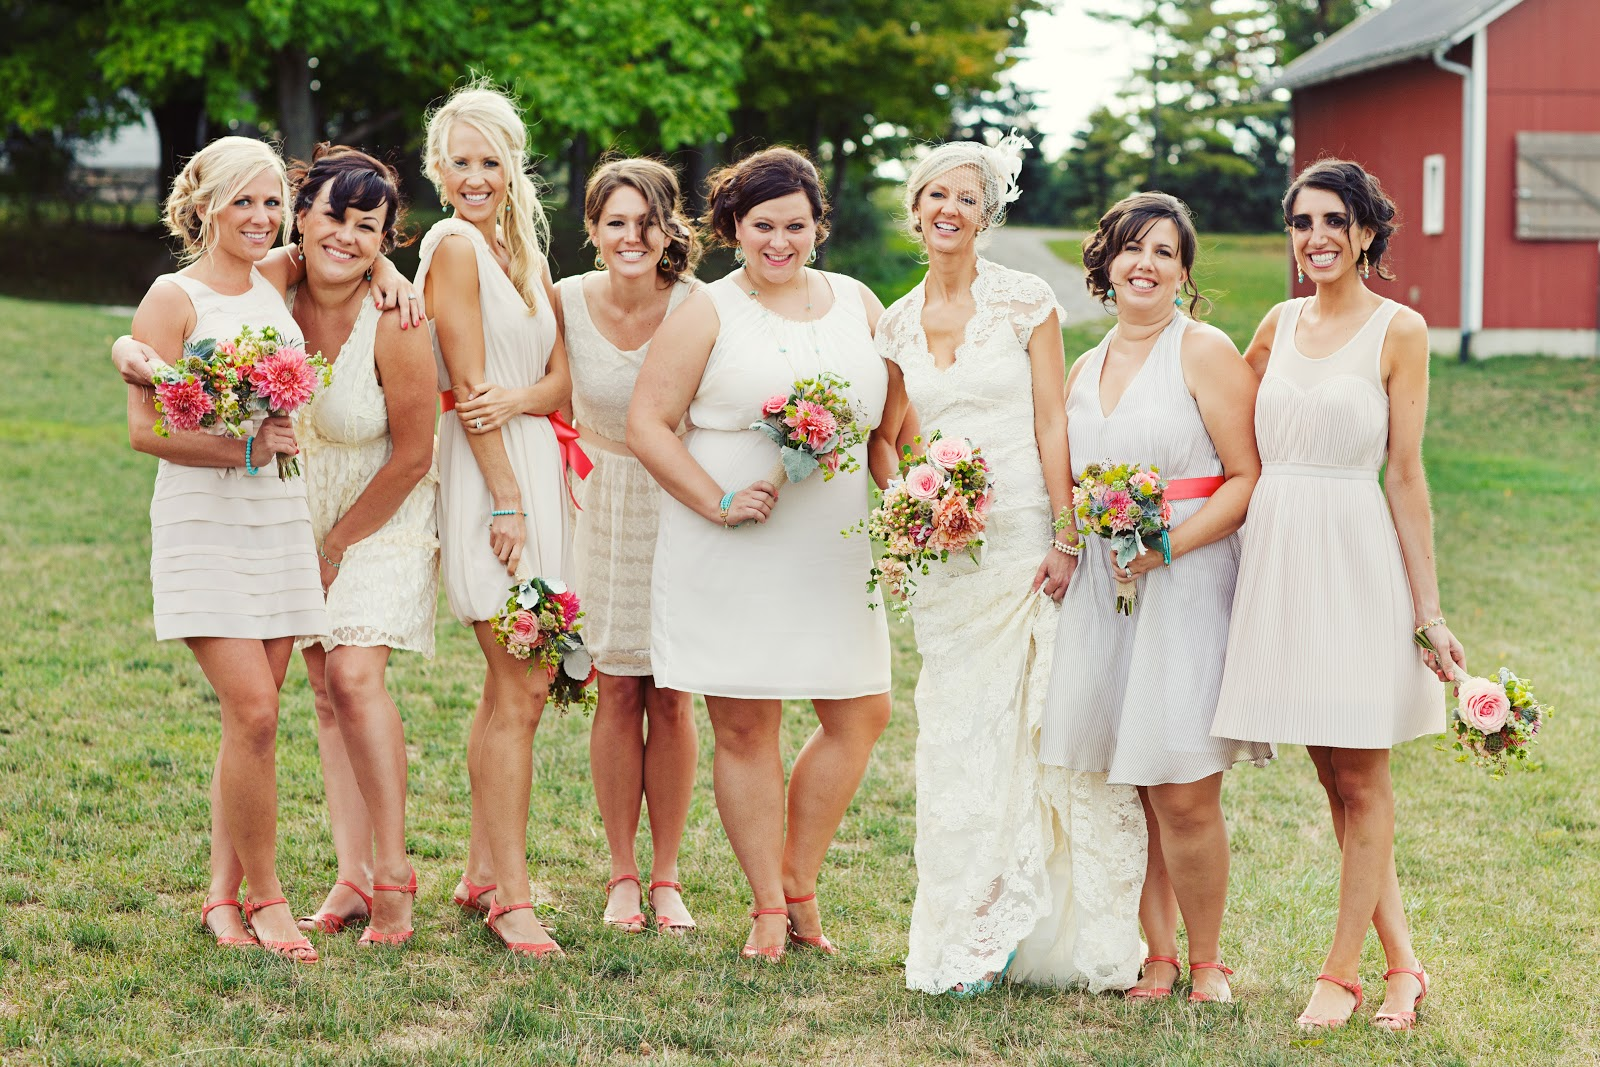 Mismatched bridesmaid dresses something vintage rentals mismatched bridesmaid dresses ombrellifo Gallery